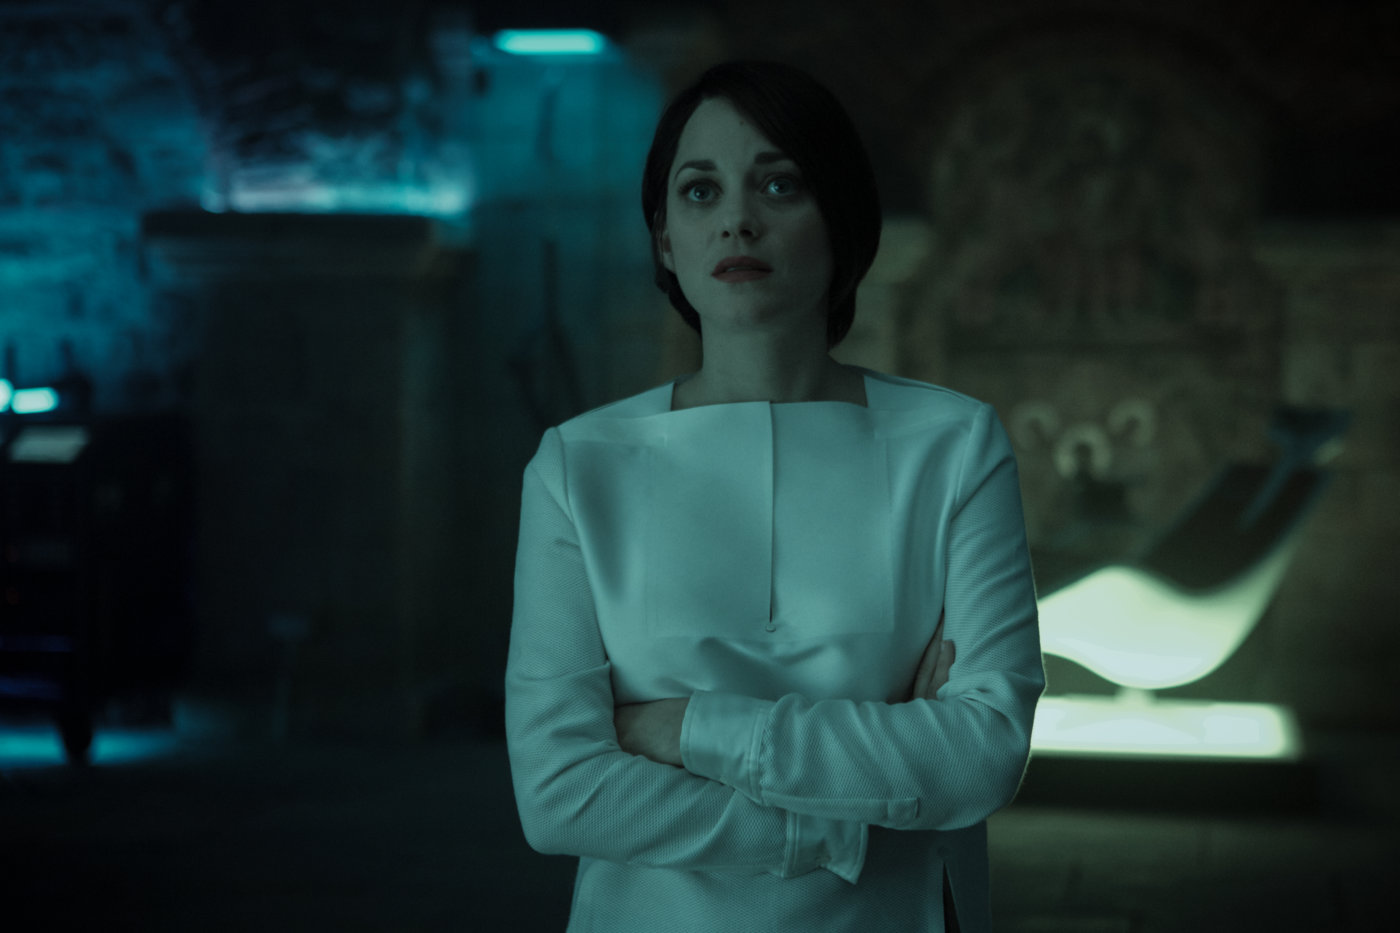 Marion Cotillard in Assassin's Creed (2016)